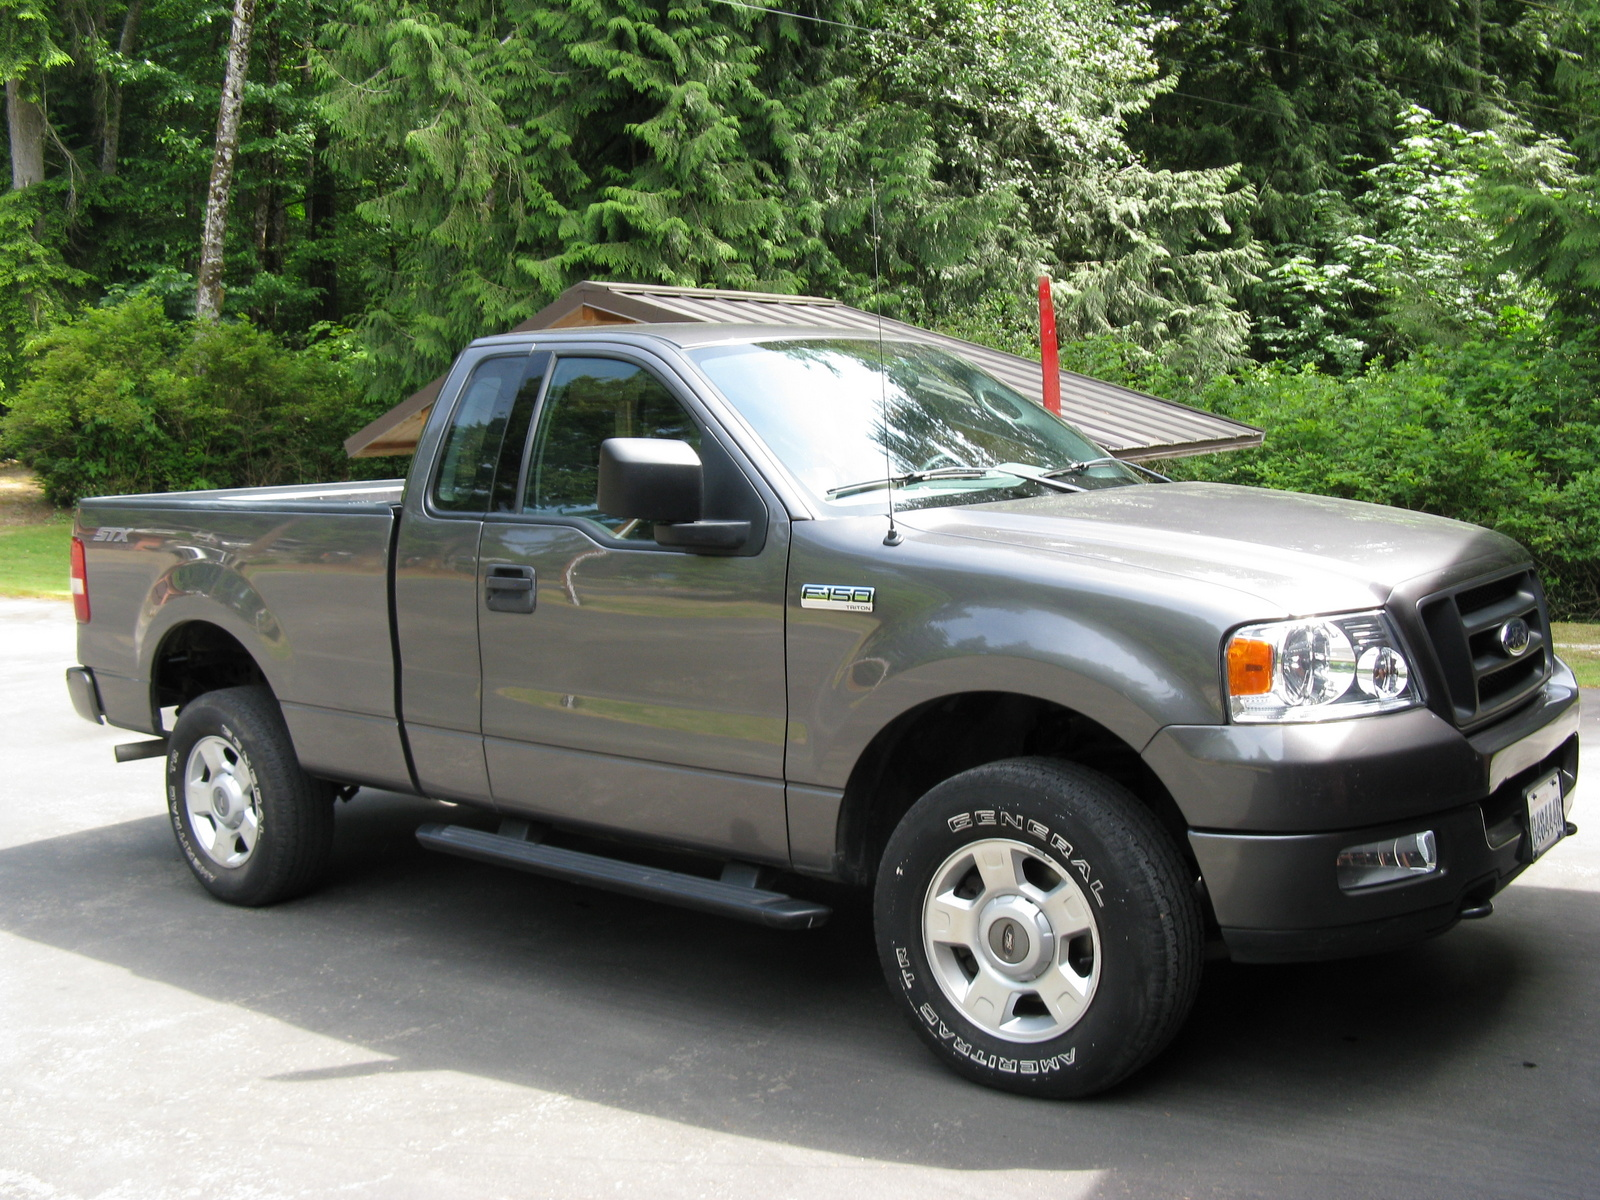 Snap 2004 Ford F 150 Stx Review Upcomingcarshqcom Photos On Pinterest Pictures Cargurus